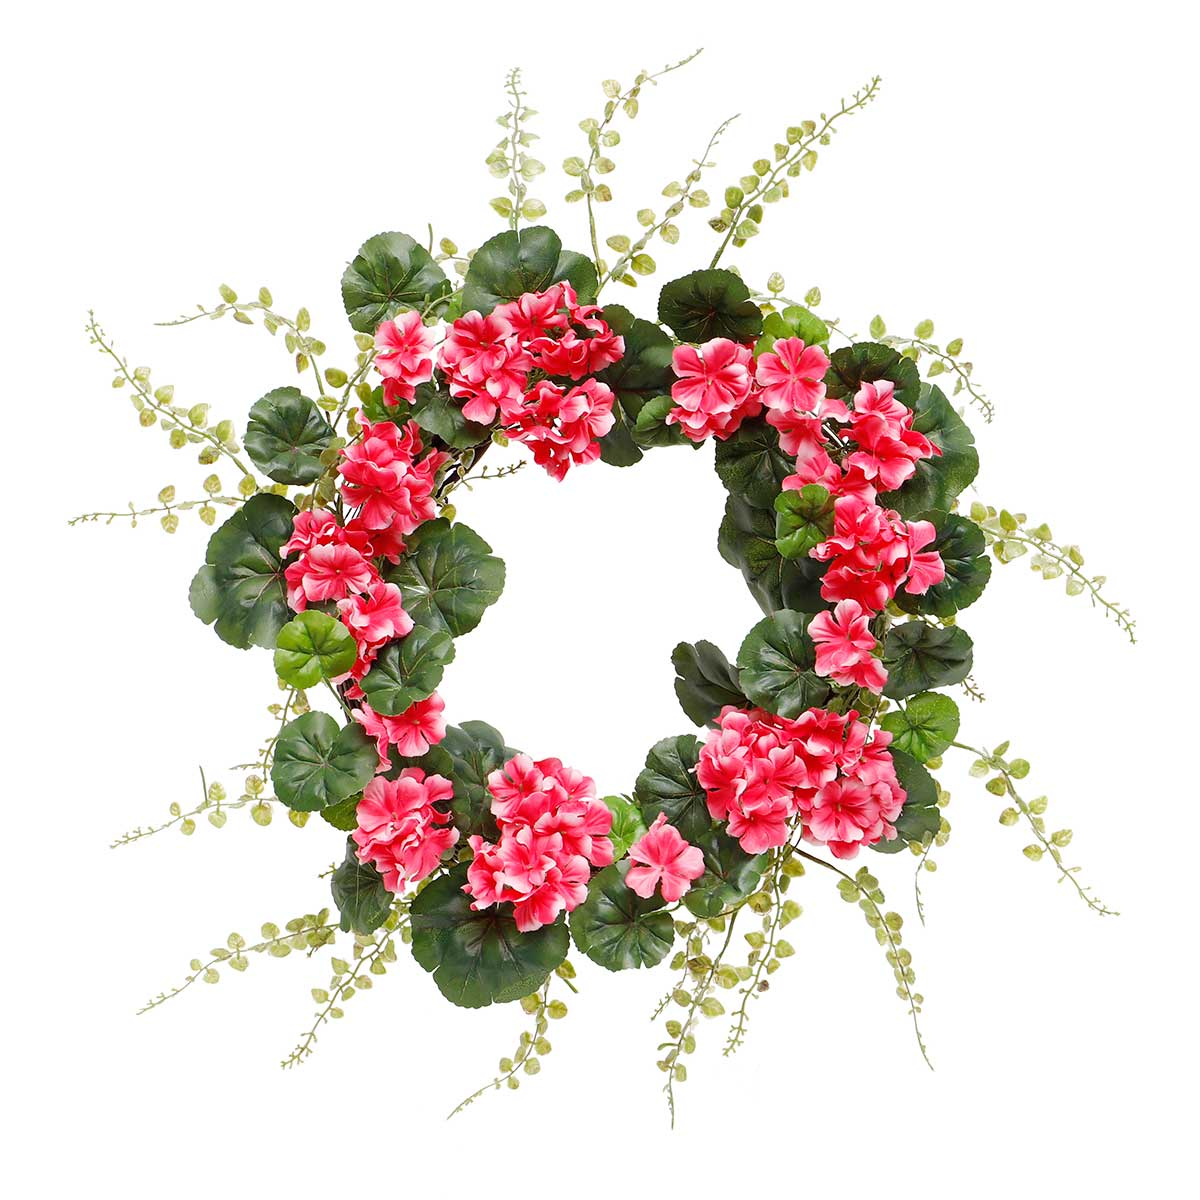 RASPBERRY GERANIUM WREATH WITH TWIG BASE 22""